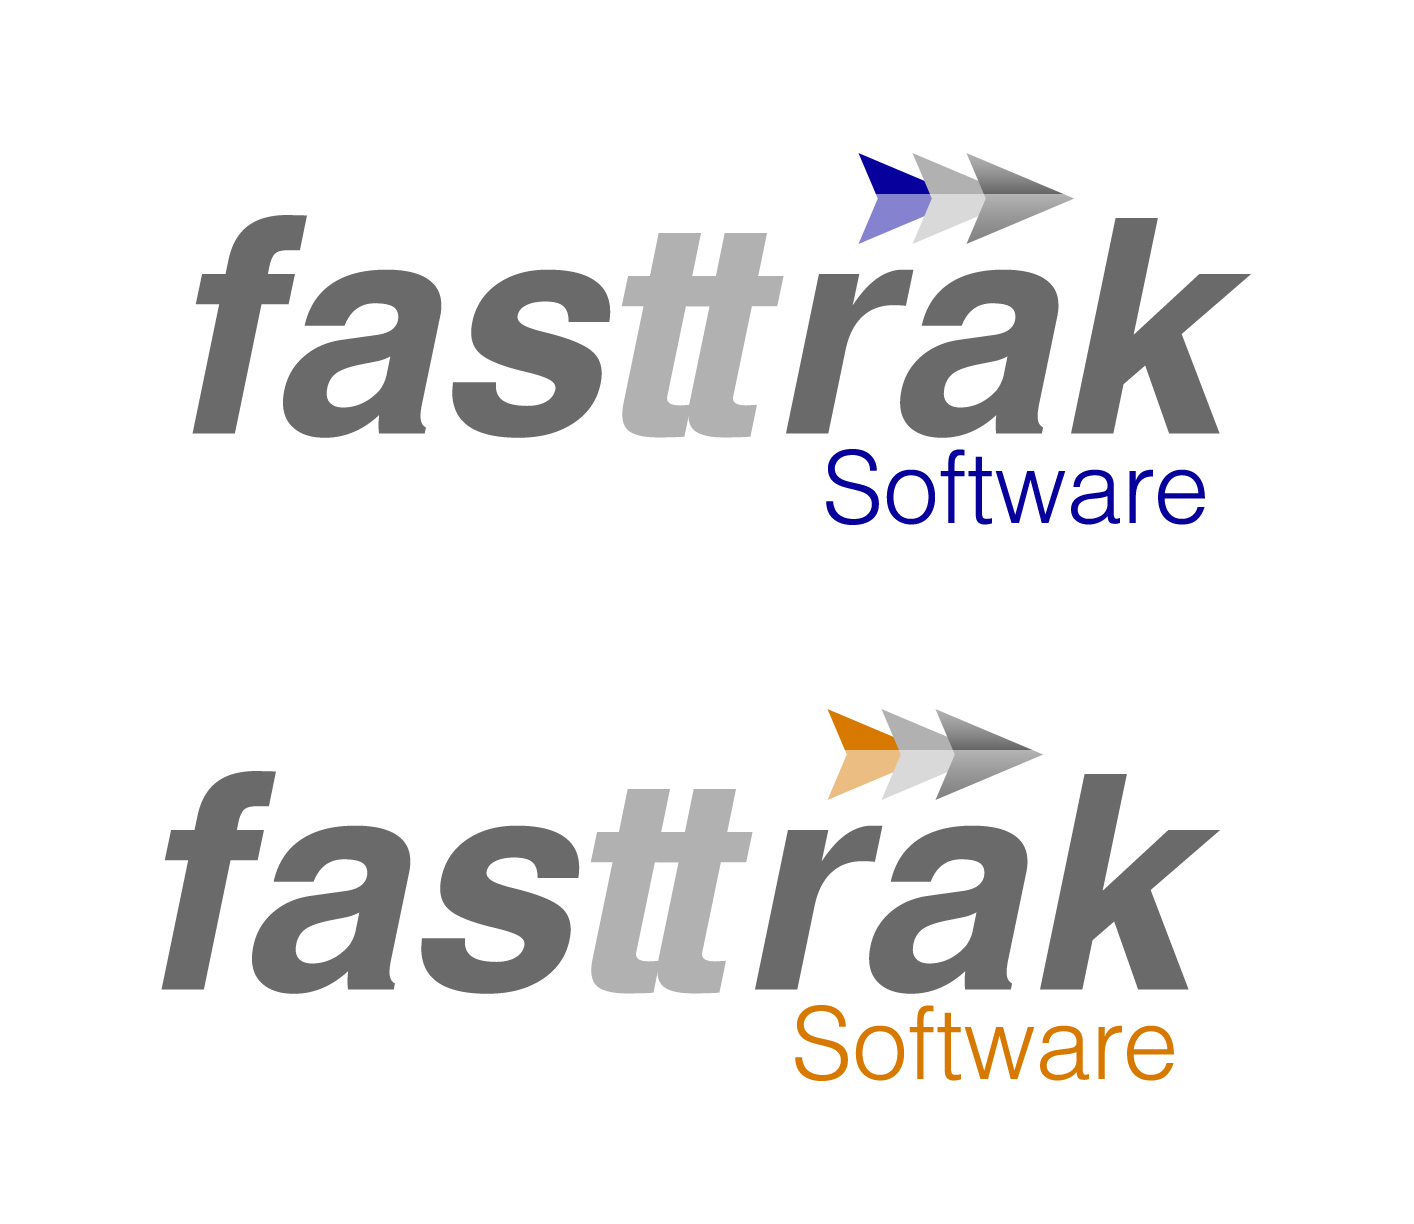 Logo Design by Lama Creative - Entry No. 64 in the Logo Design Contest Fast Trak Software Logo Design.